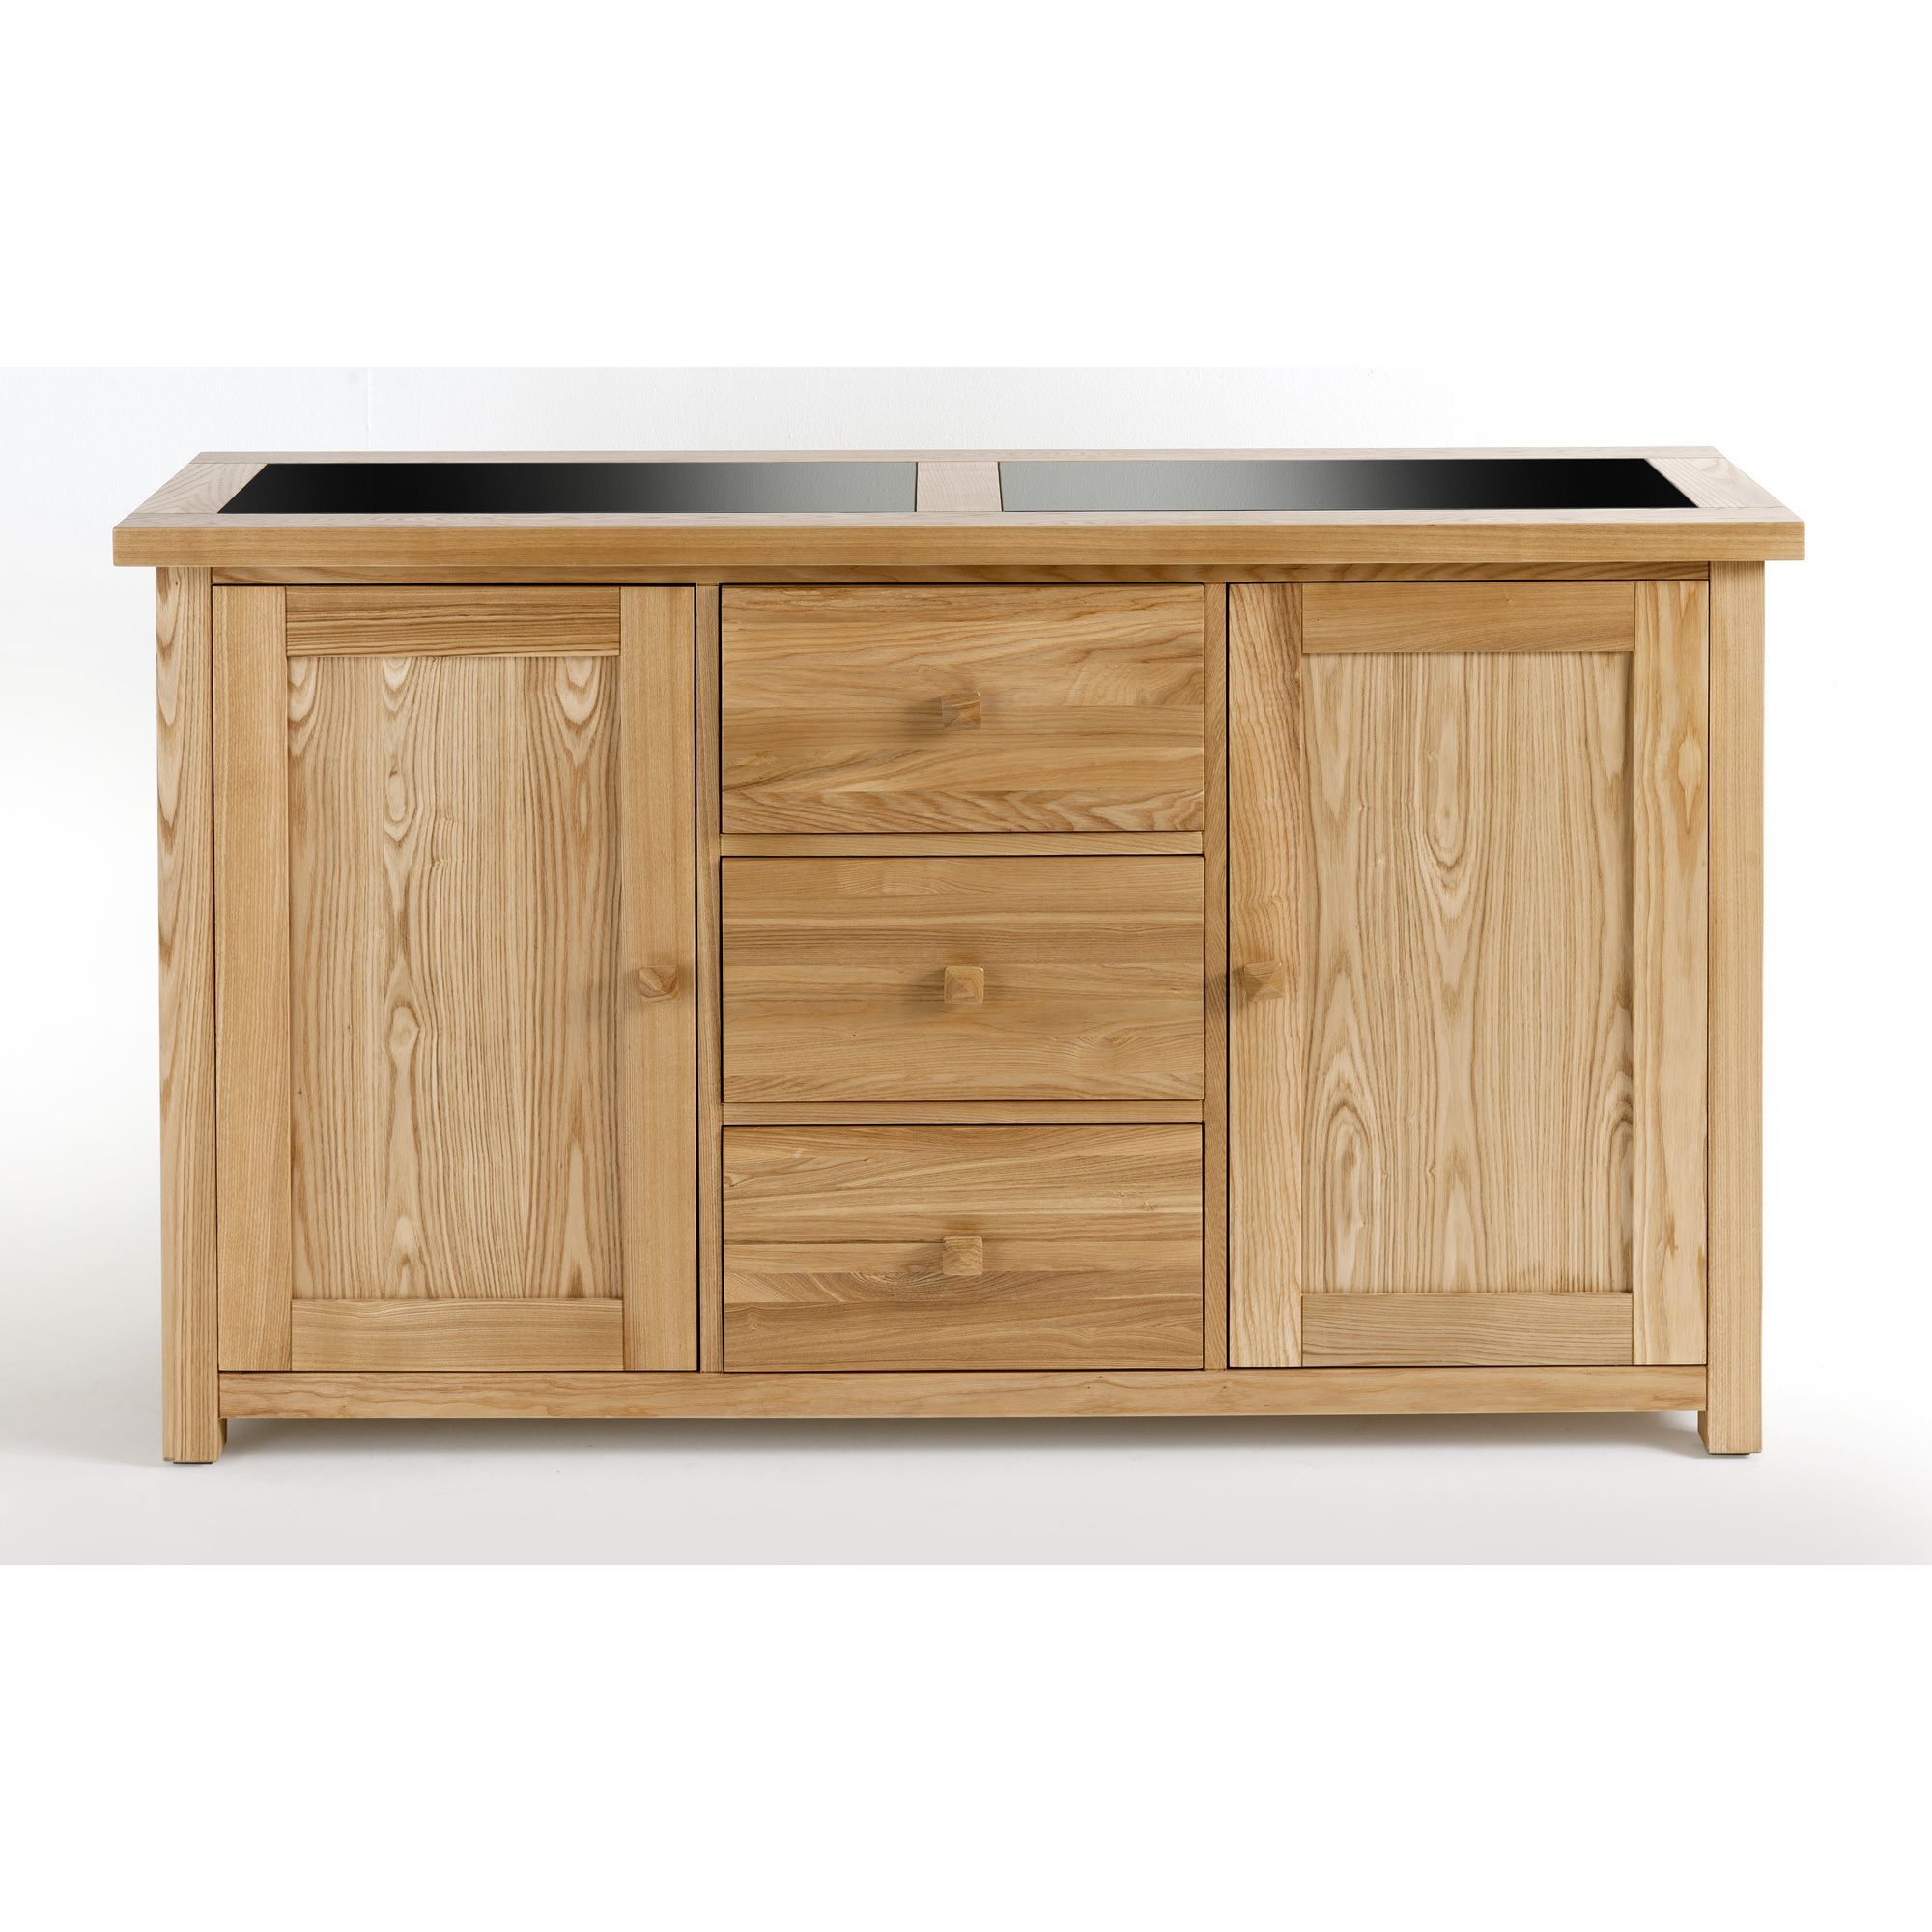 Originals Fusion Large Sideboard at Tesco Direct